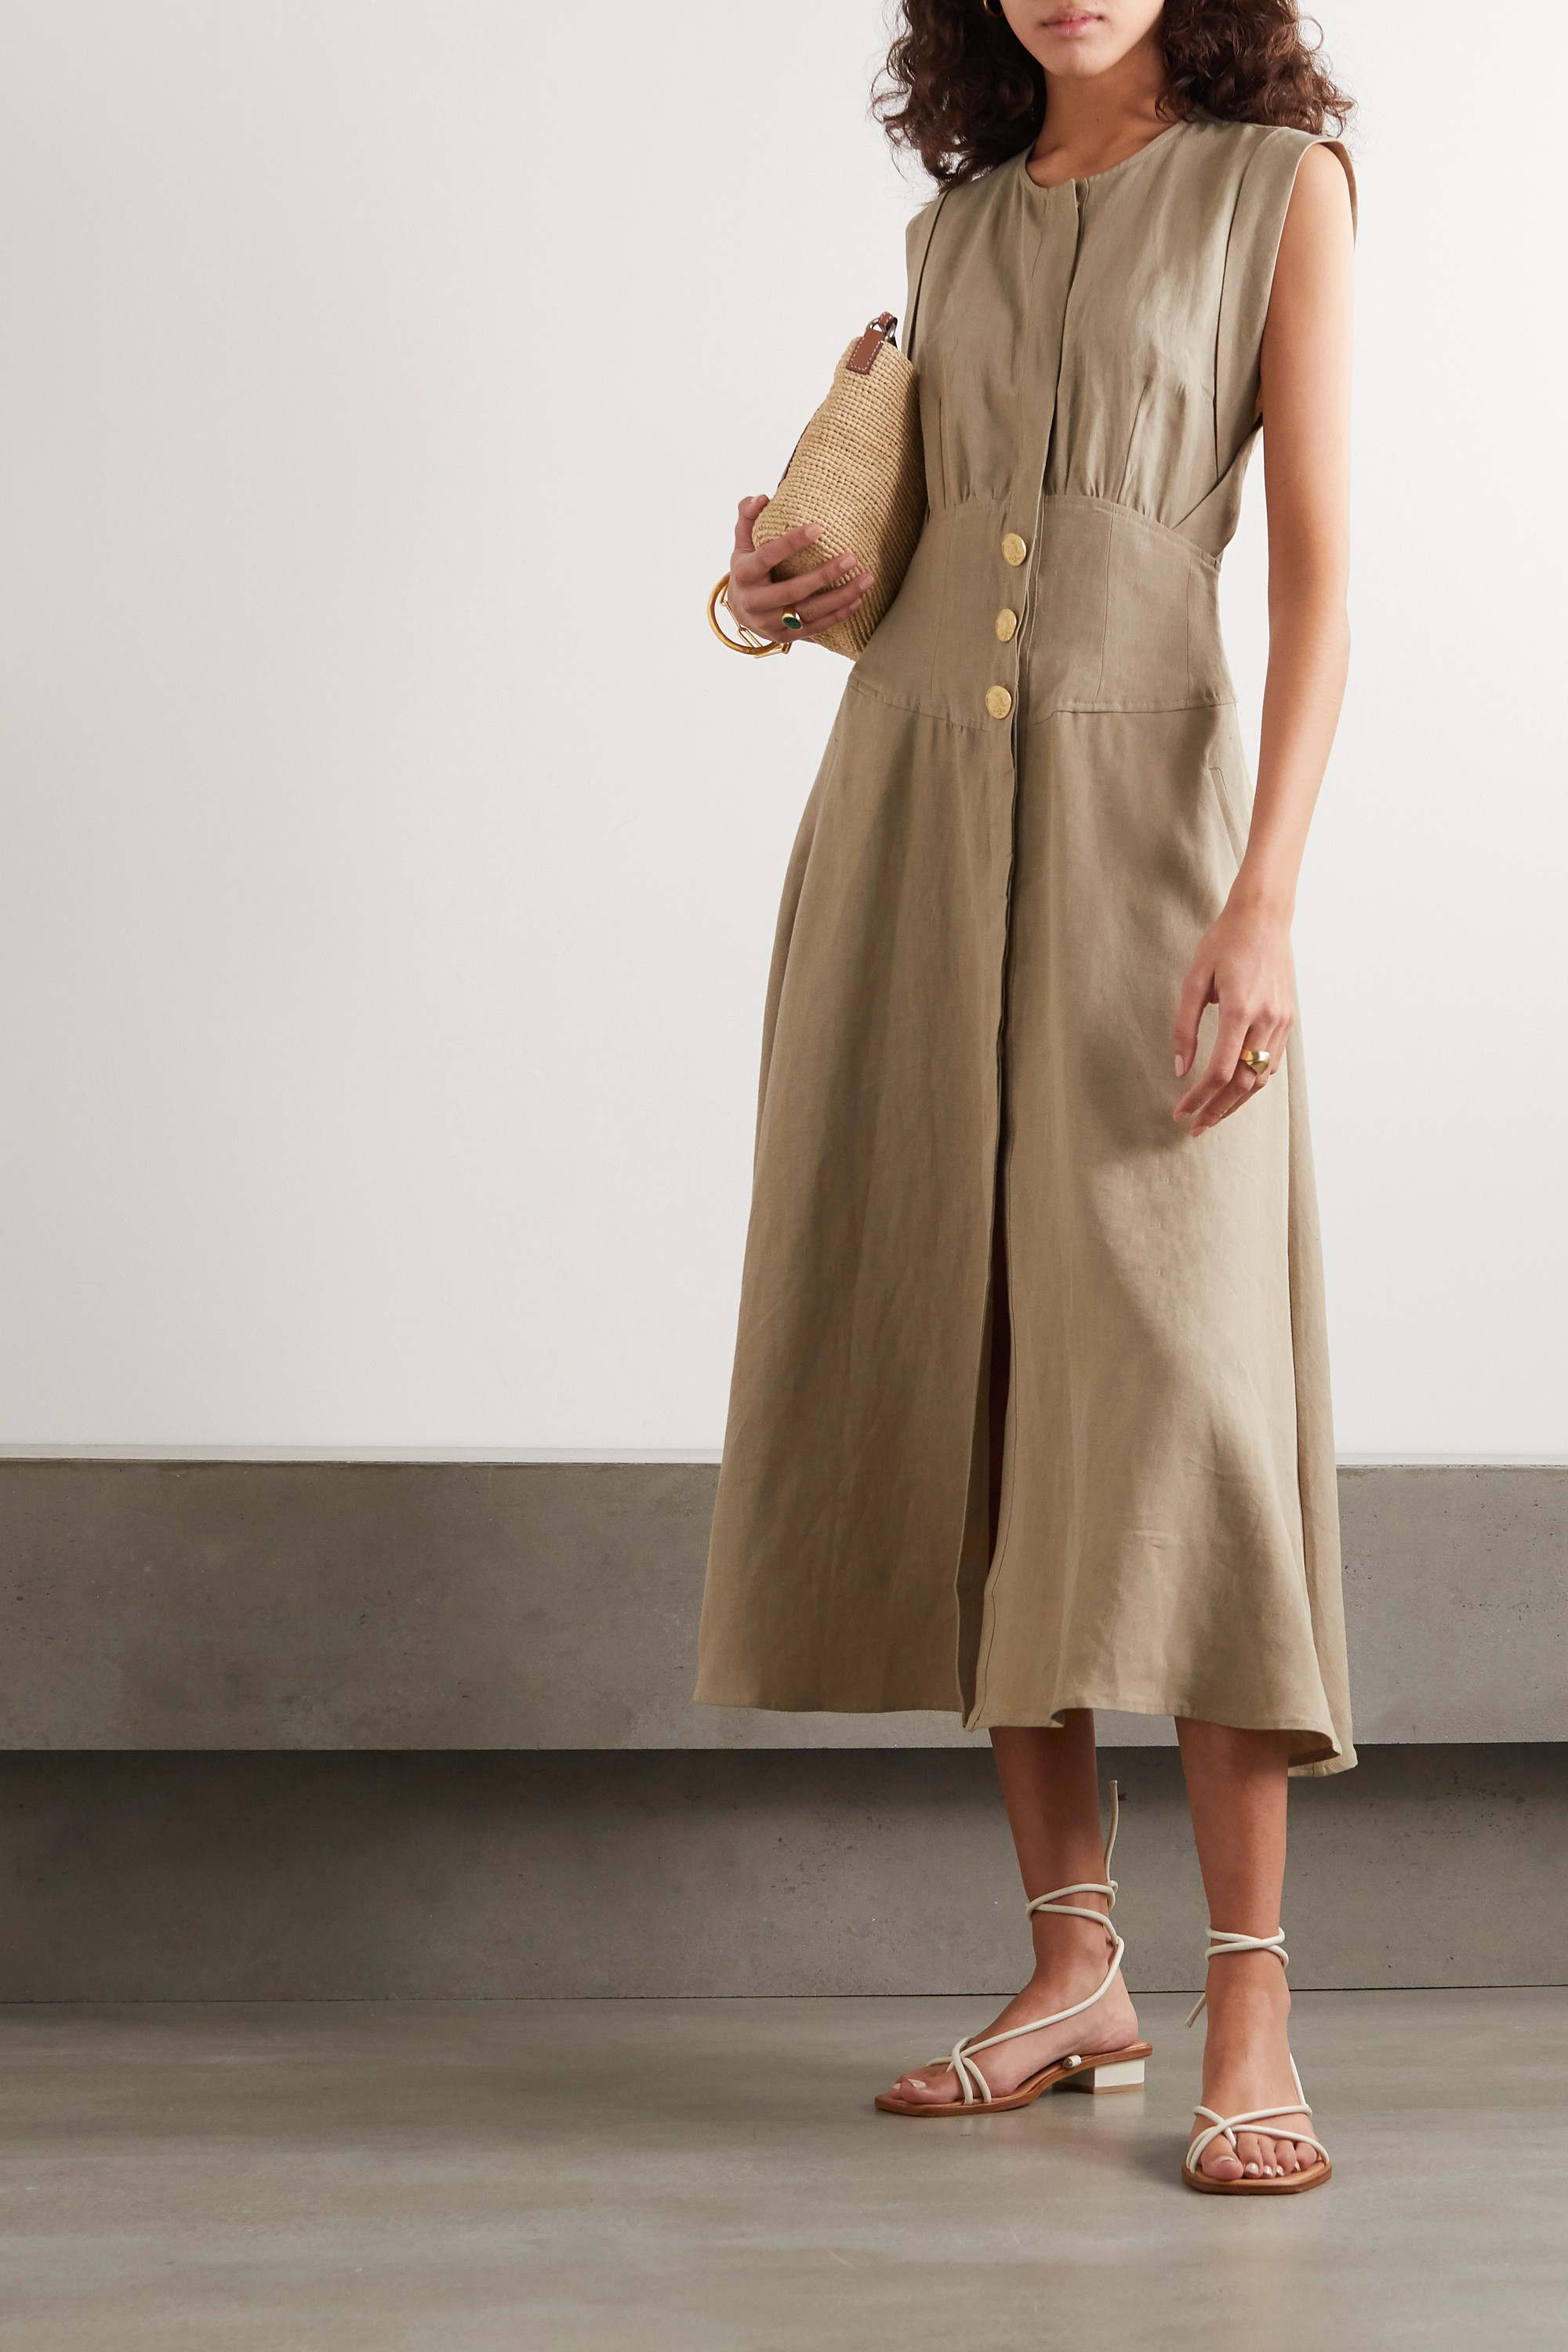 Le Kasha Dishna pleated linen midi dress